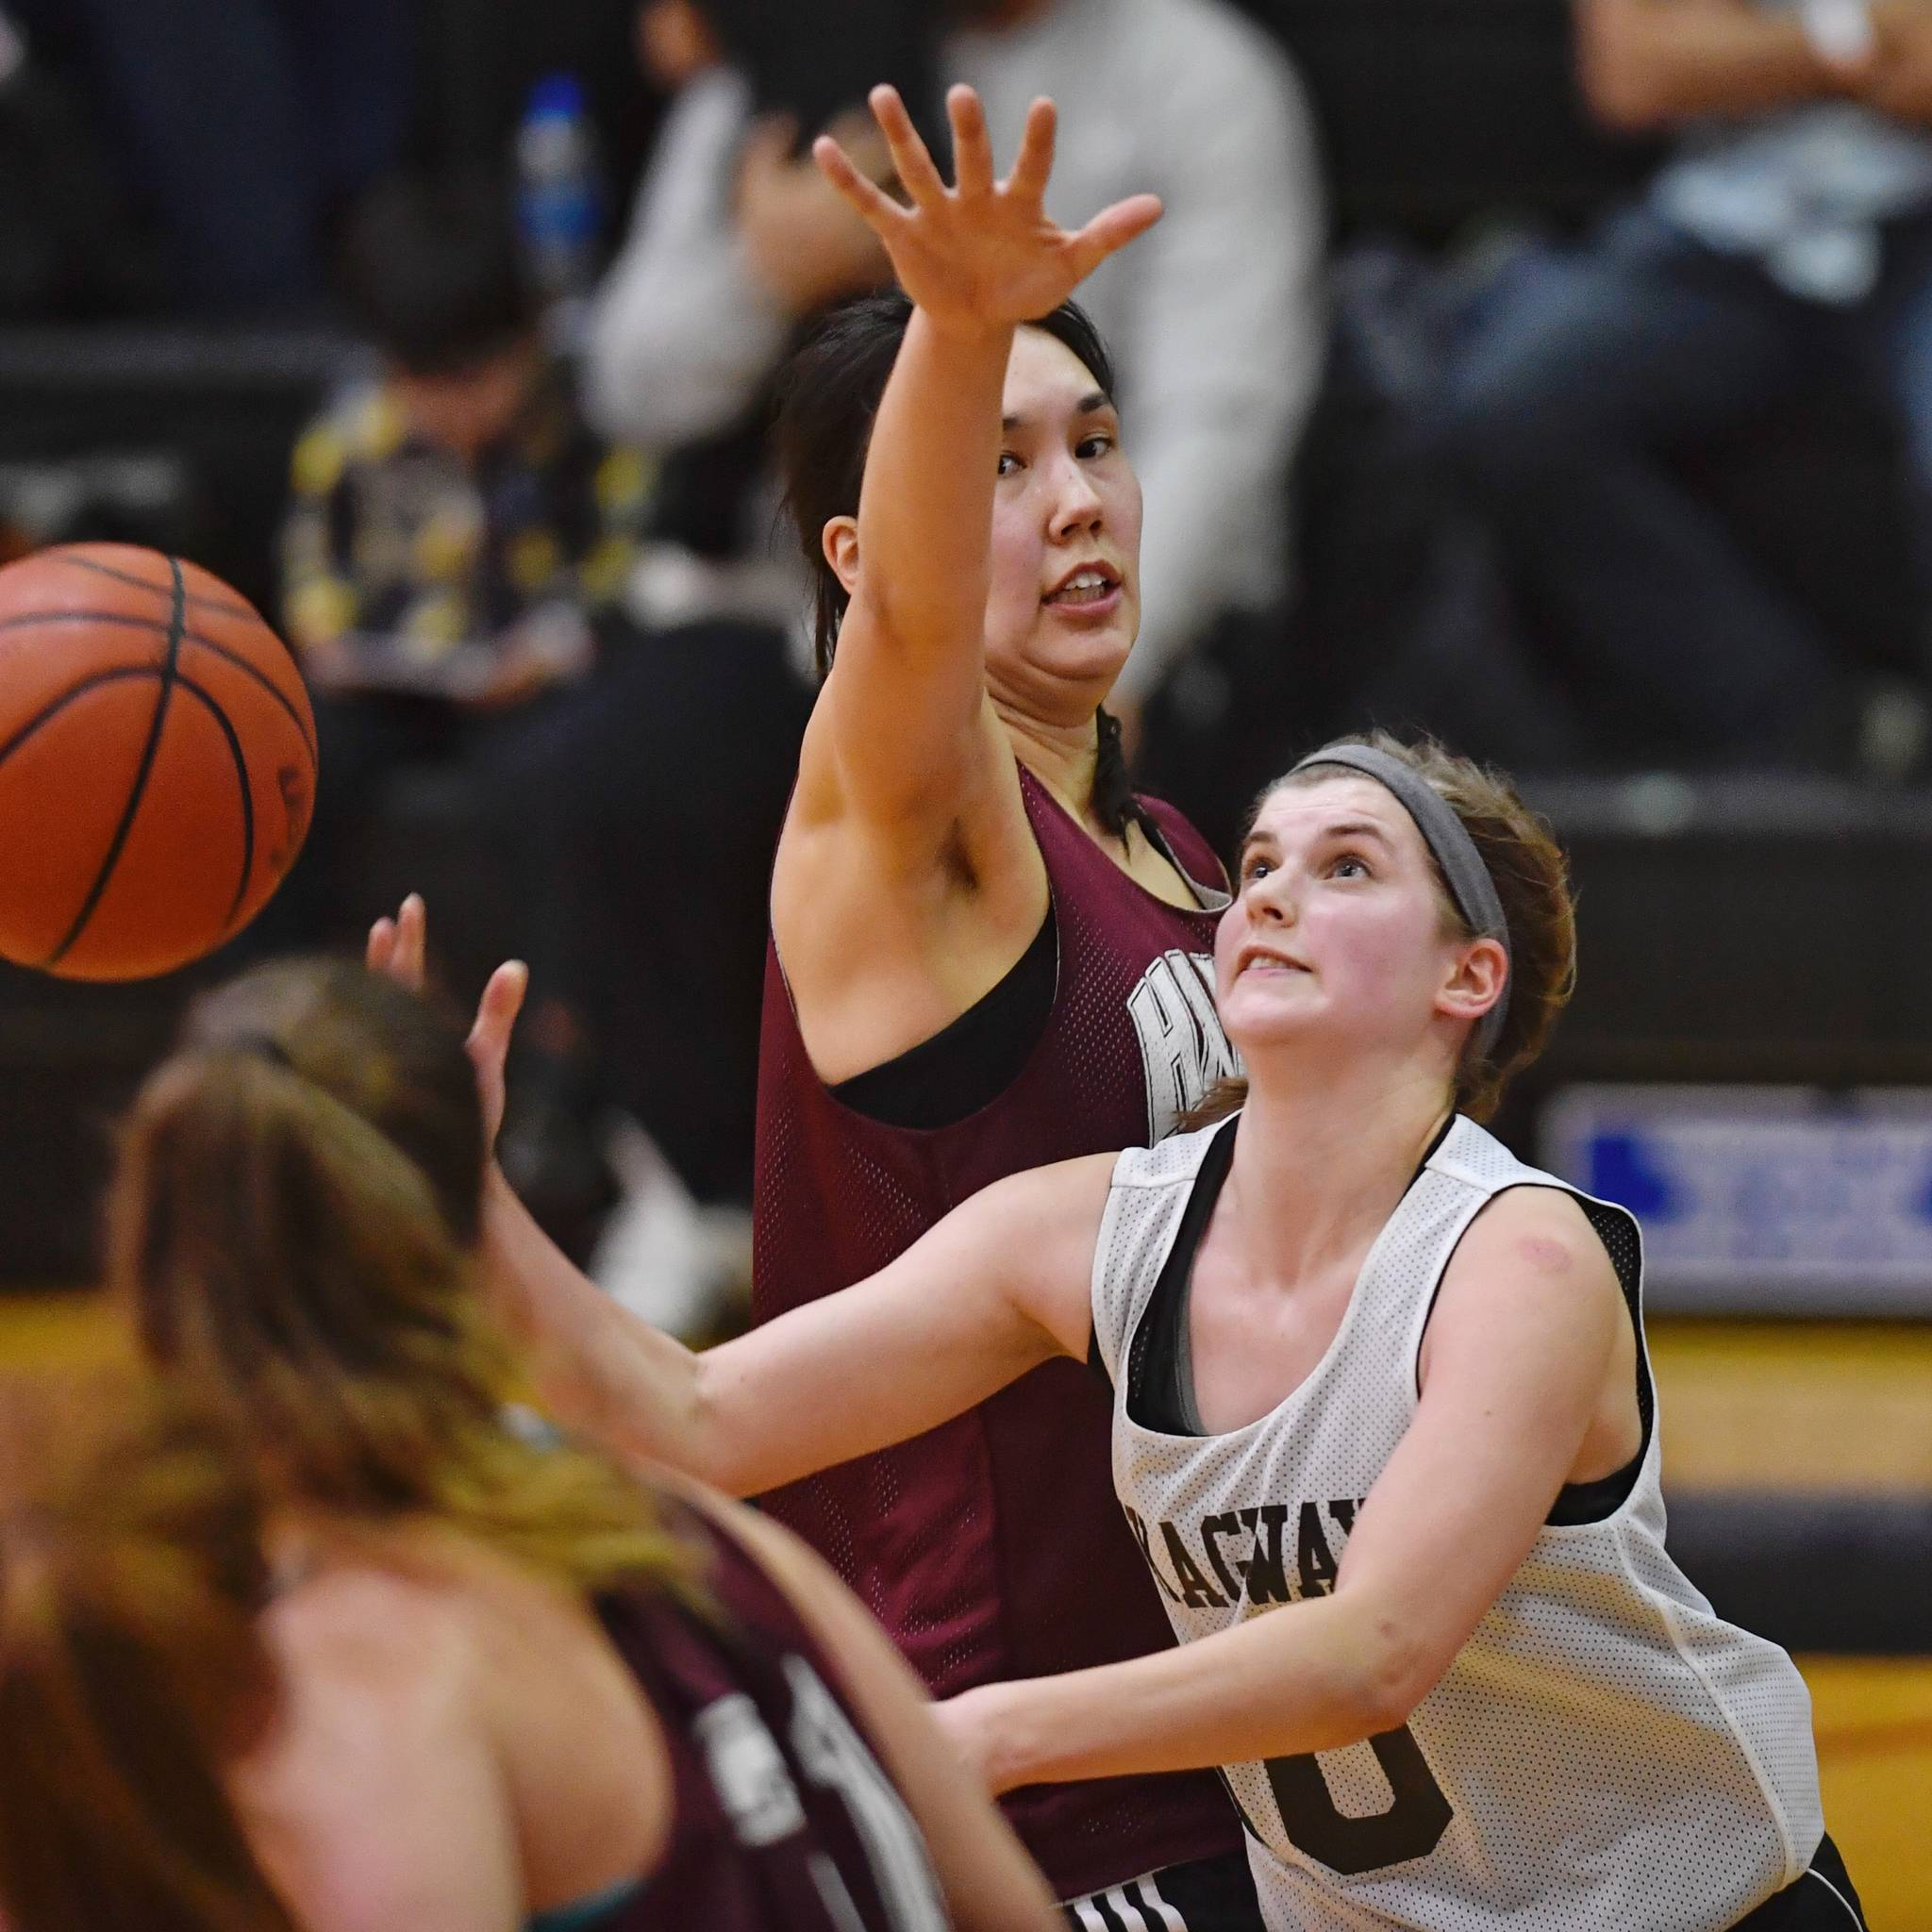 Skagway's Kaylie Smith, right, shoots against Haines' Fran Daly in the women's final at the Gold Medal Basketball Tournament on Saturday, March 23, 2019. (Michael Penn | Juneau Empire)